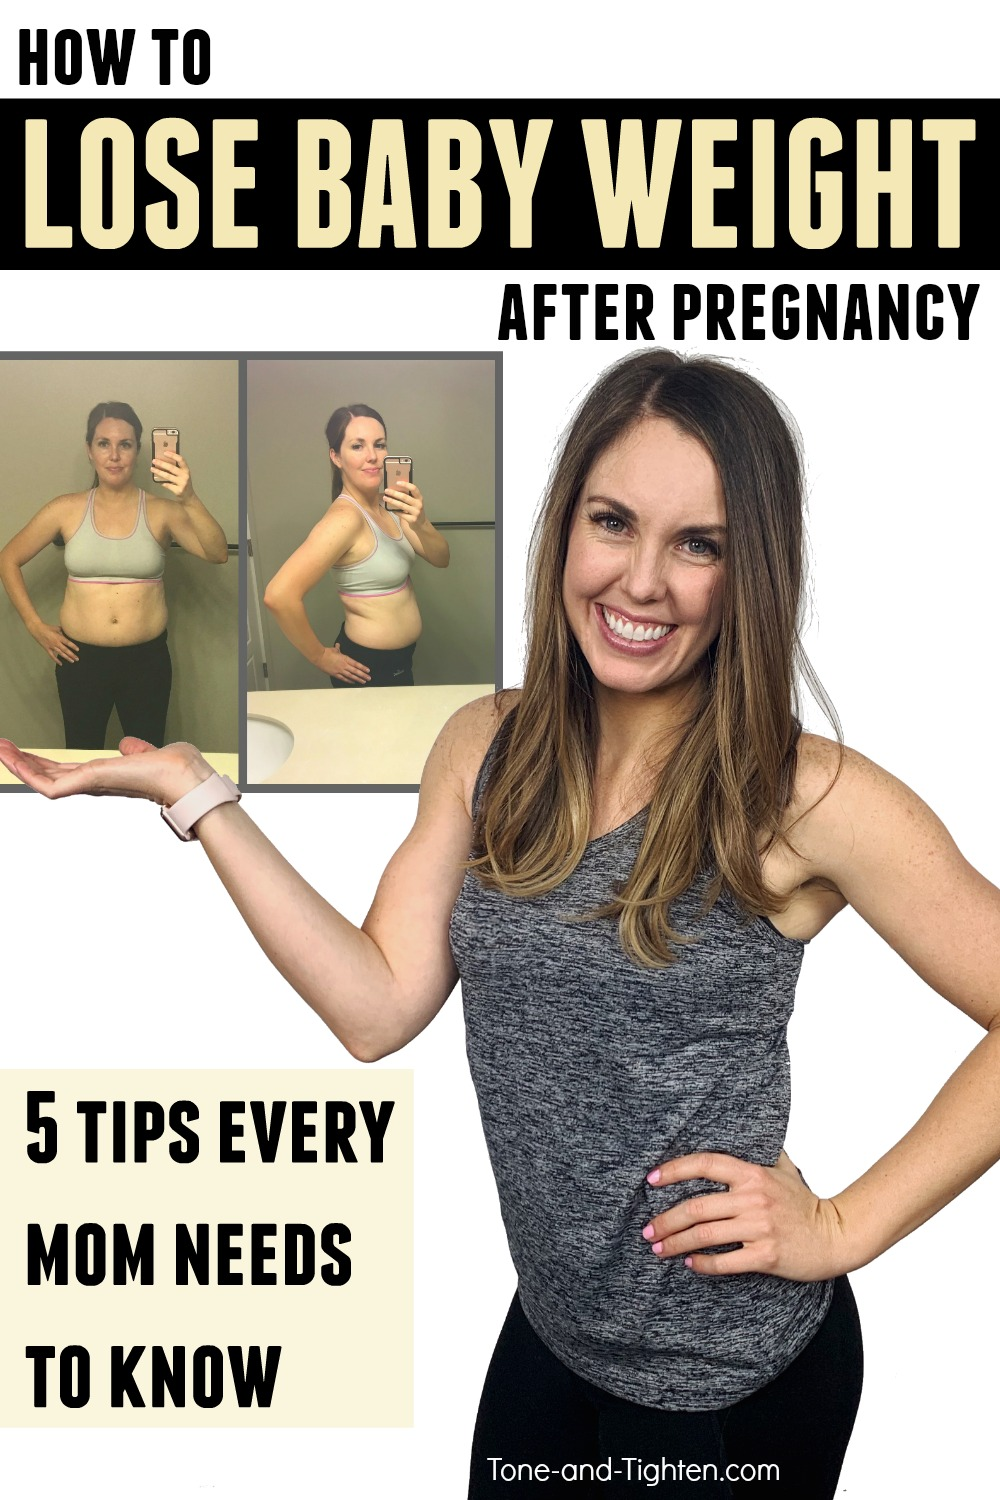 How To Heal Abdominal Separation, Lose Baby Fat, And Lose Baby Belly